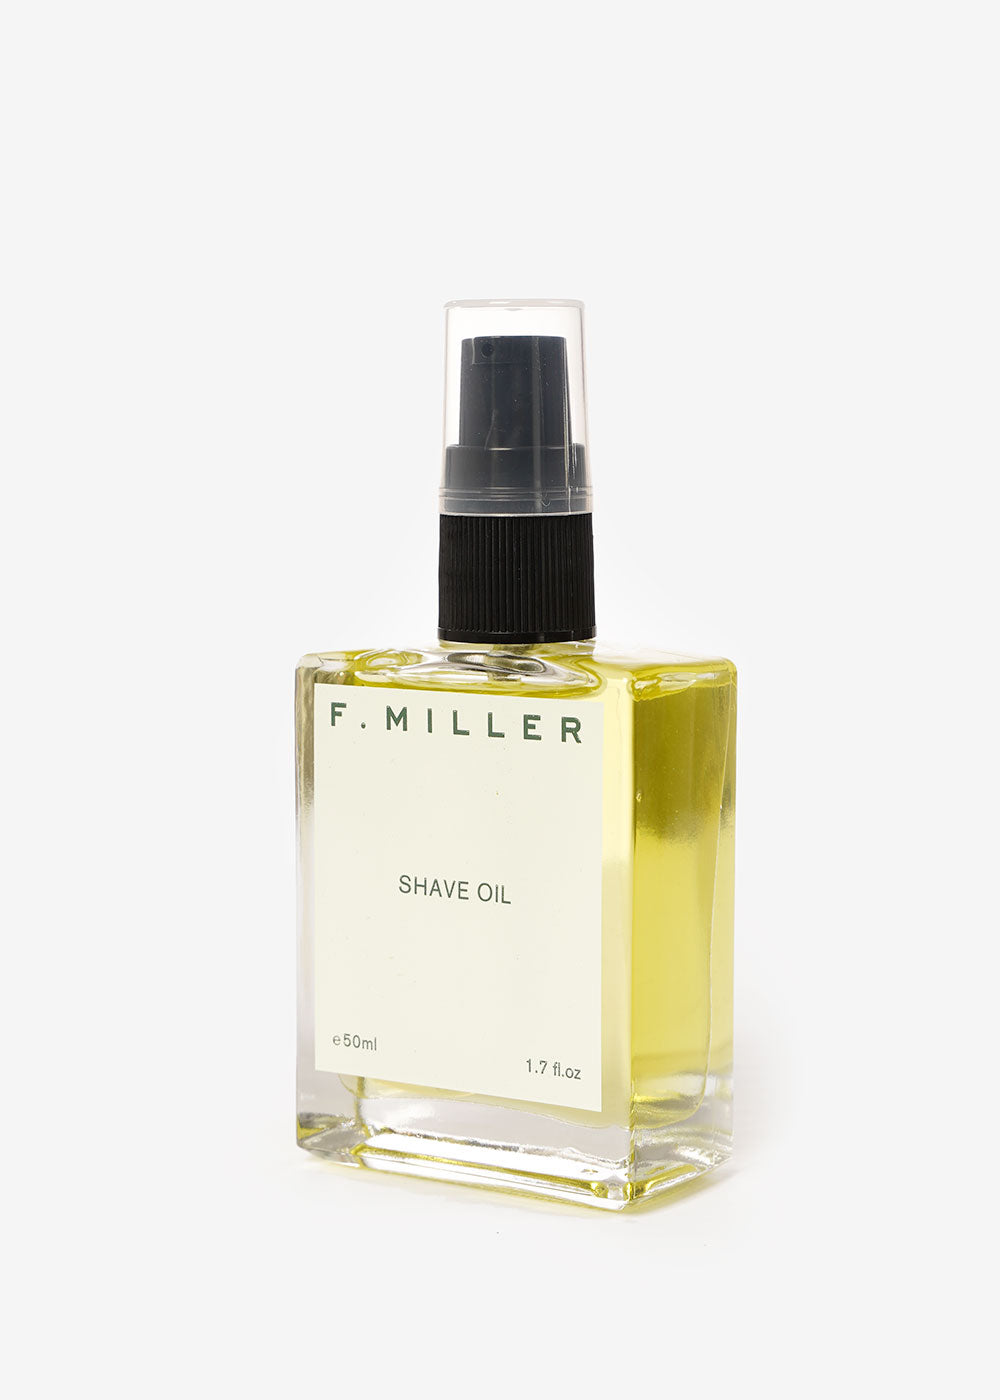 F. MILLER Shave Oil — Shop sustainable fashion and slow fashion at New Classics Studios